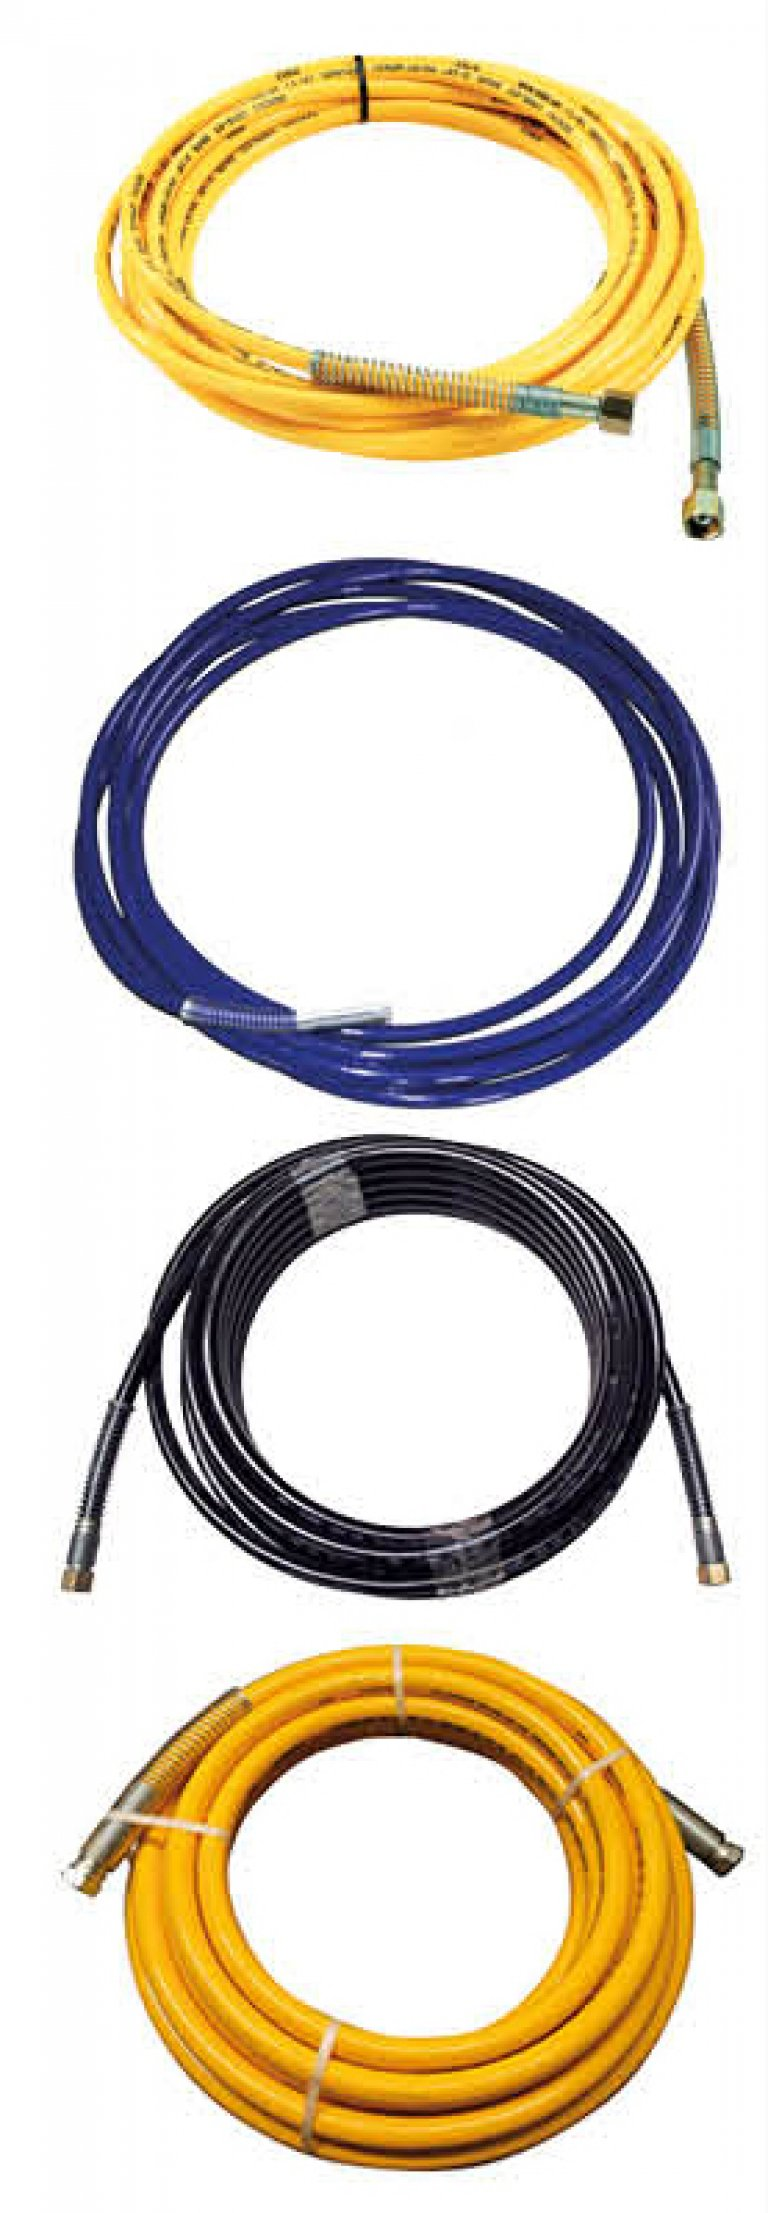 High-pressure / airless hoses